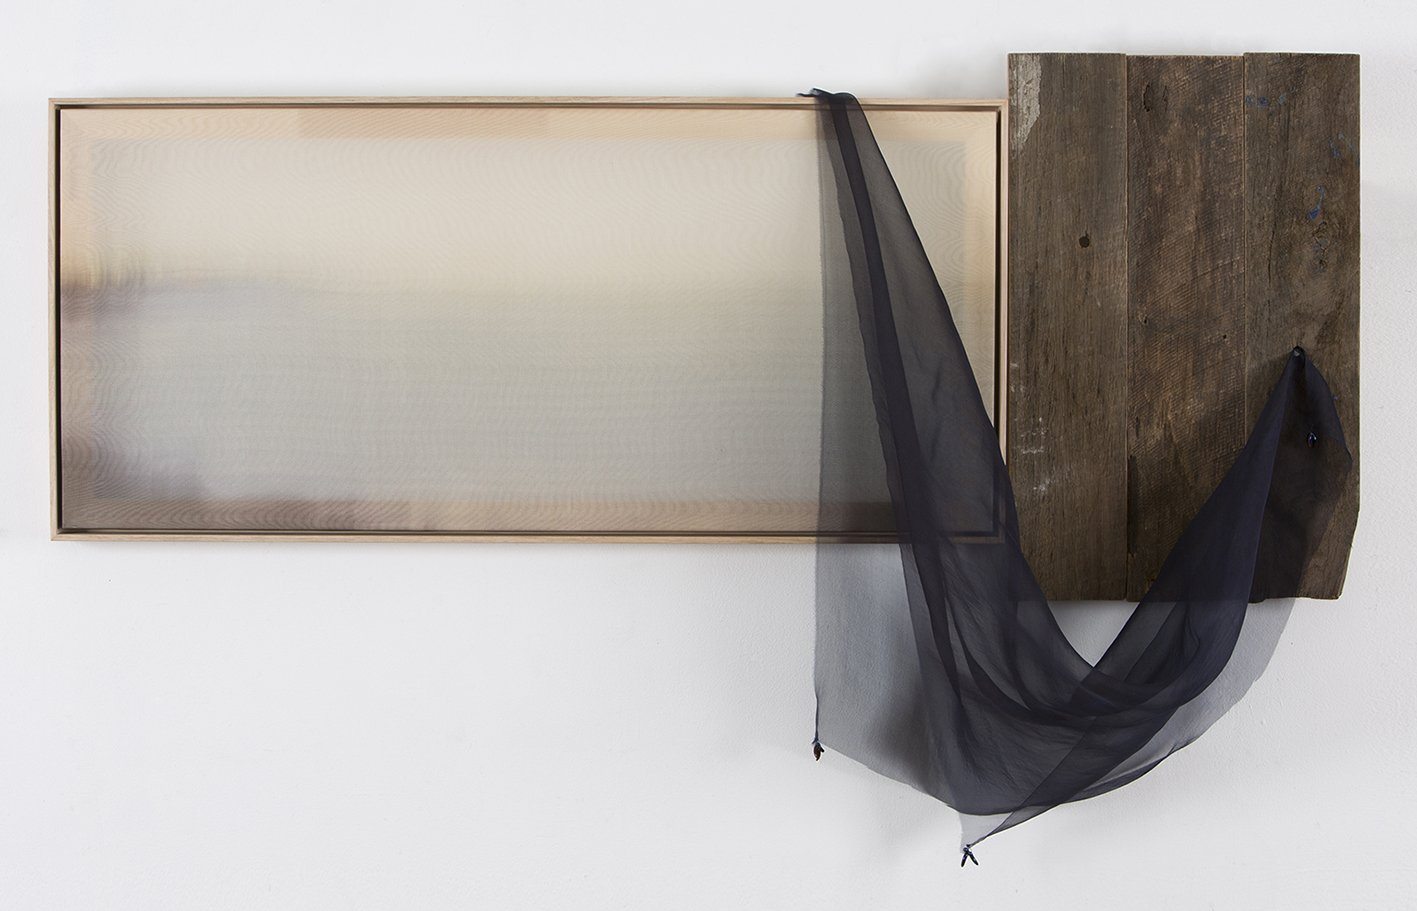 Example of recent art-making - Image of a landscape photograph on silk, assembled with a panel of used floor boards and draped indigo silk